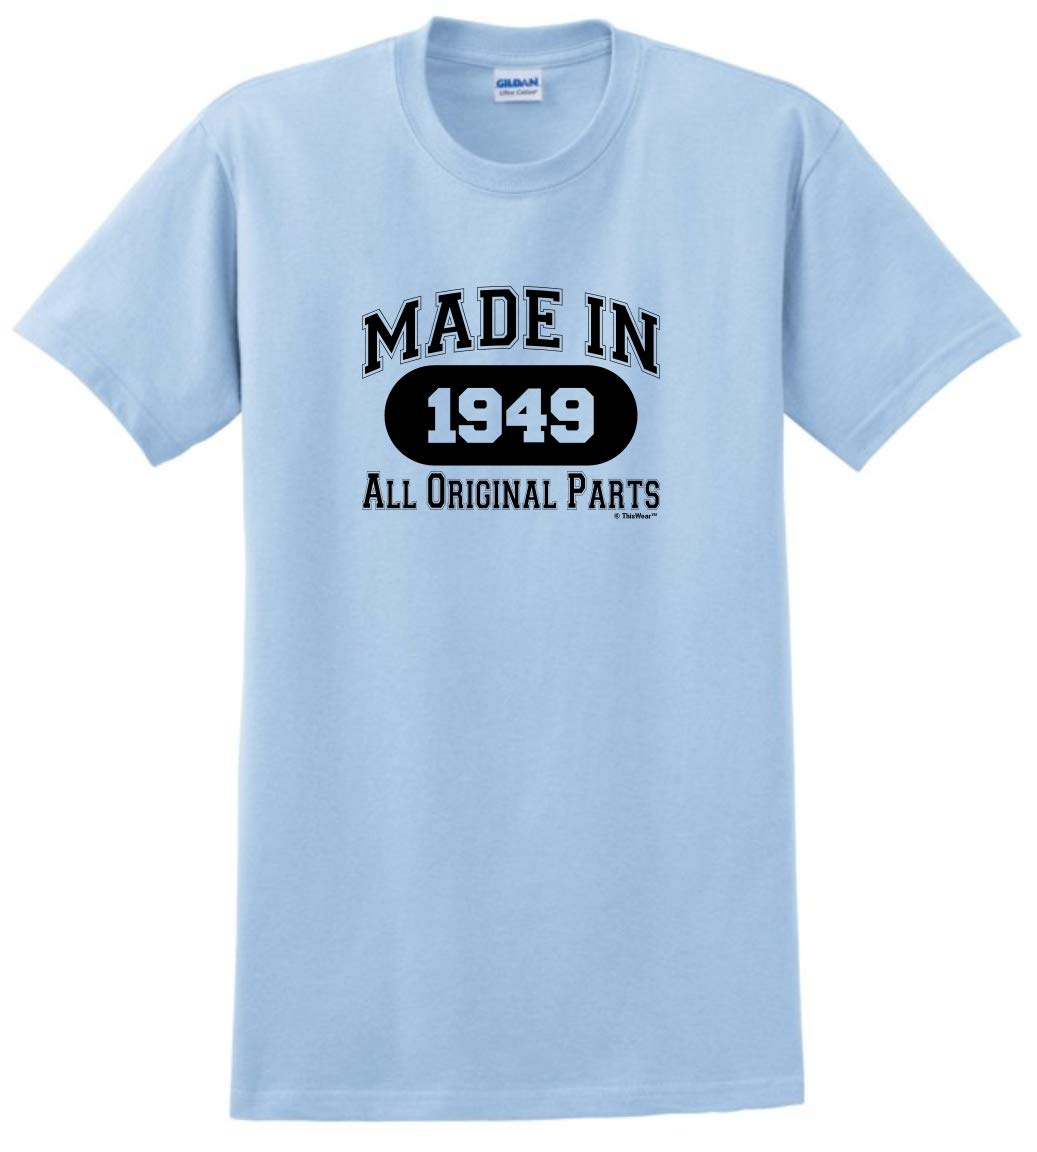 Galleon - 70th Birthday Gifts For Dad 70th Birthday Gift Made 1949 All Original Parts T-Shirt Medium Light Blue